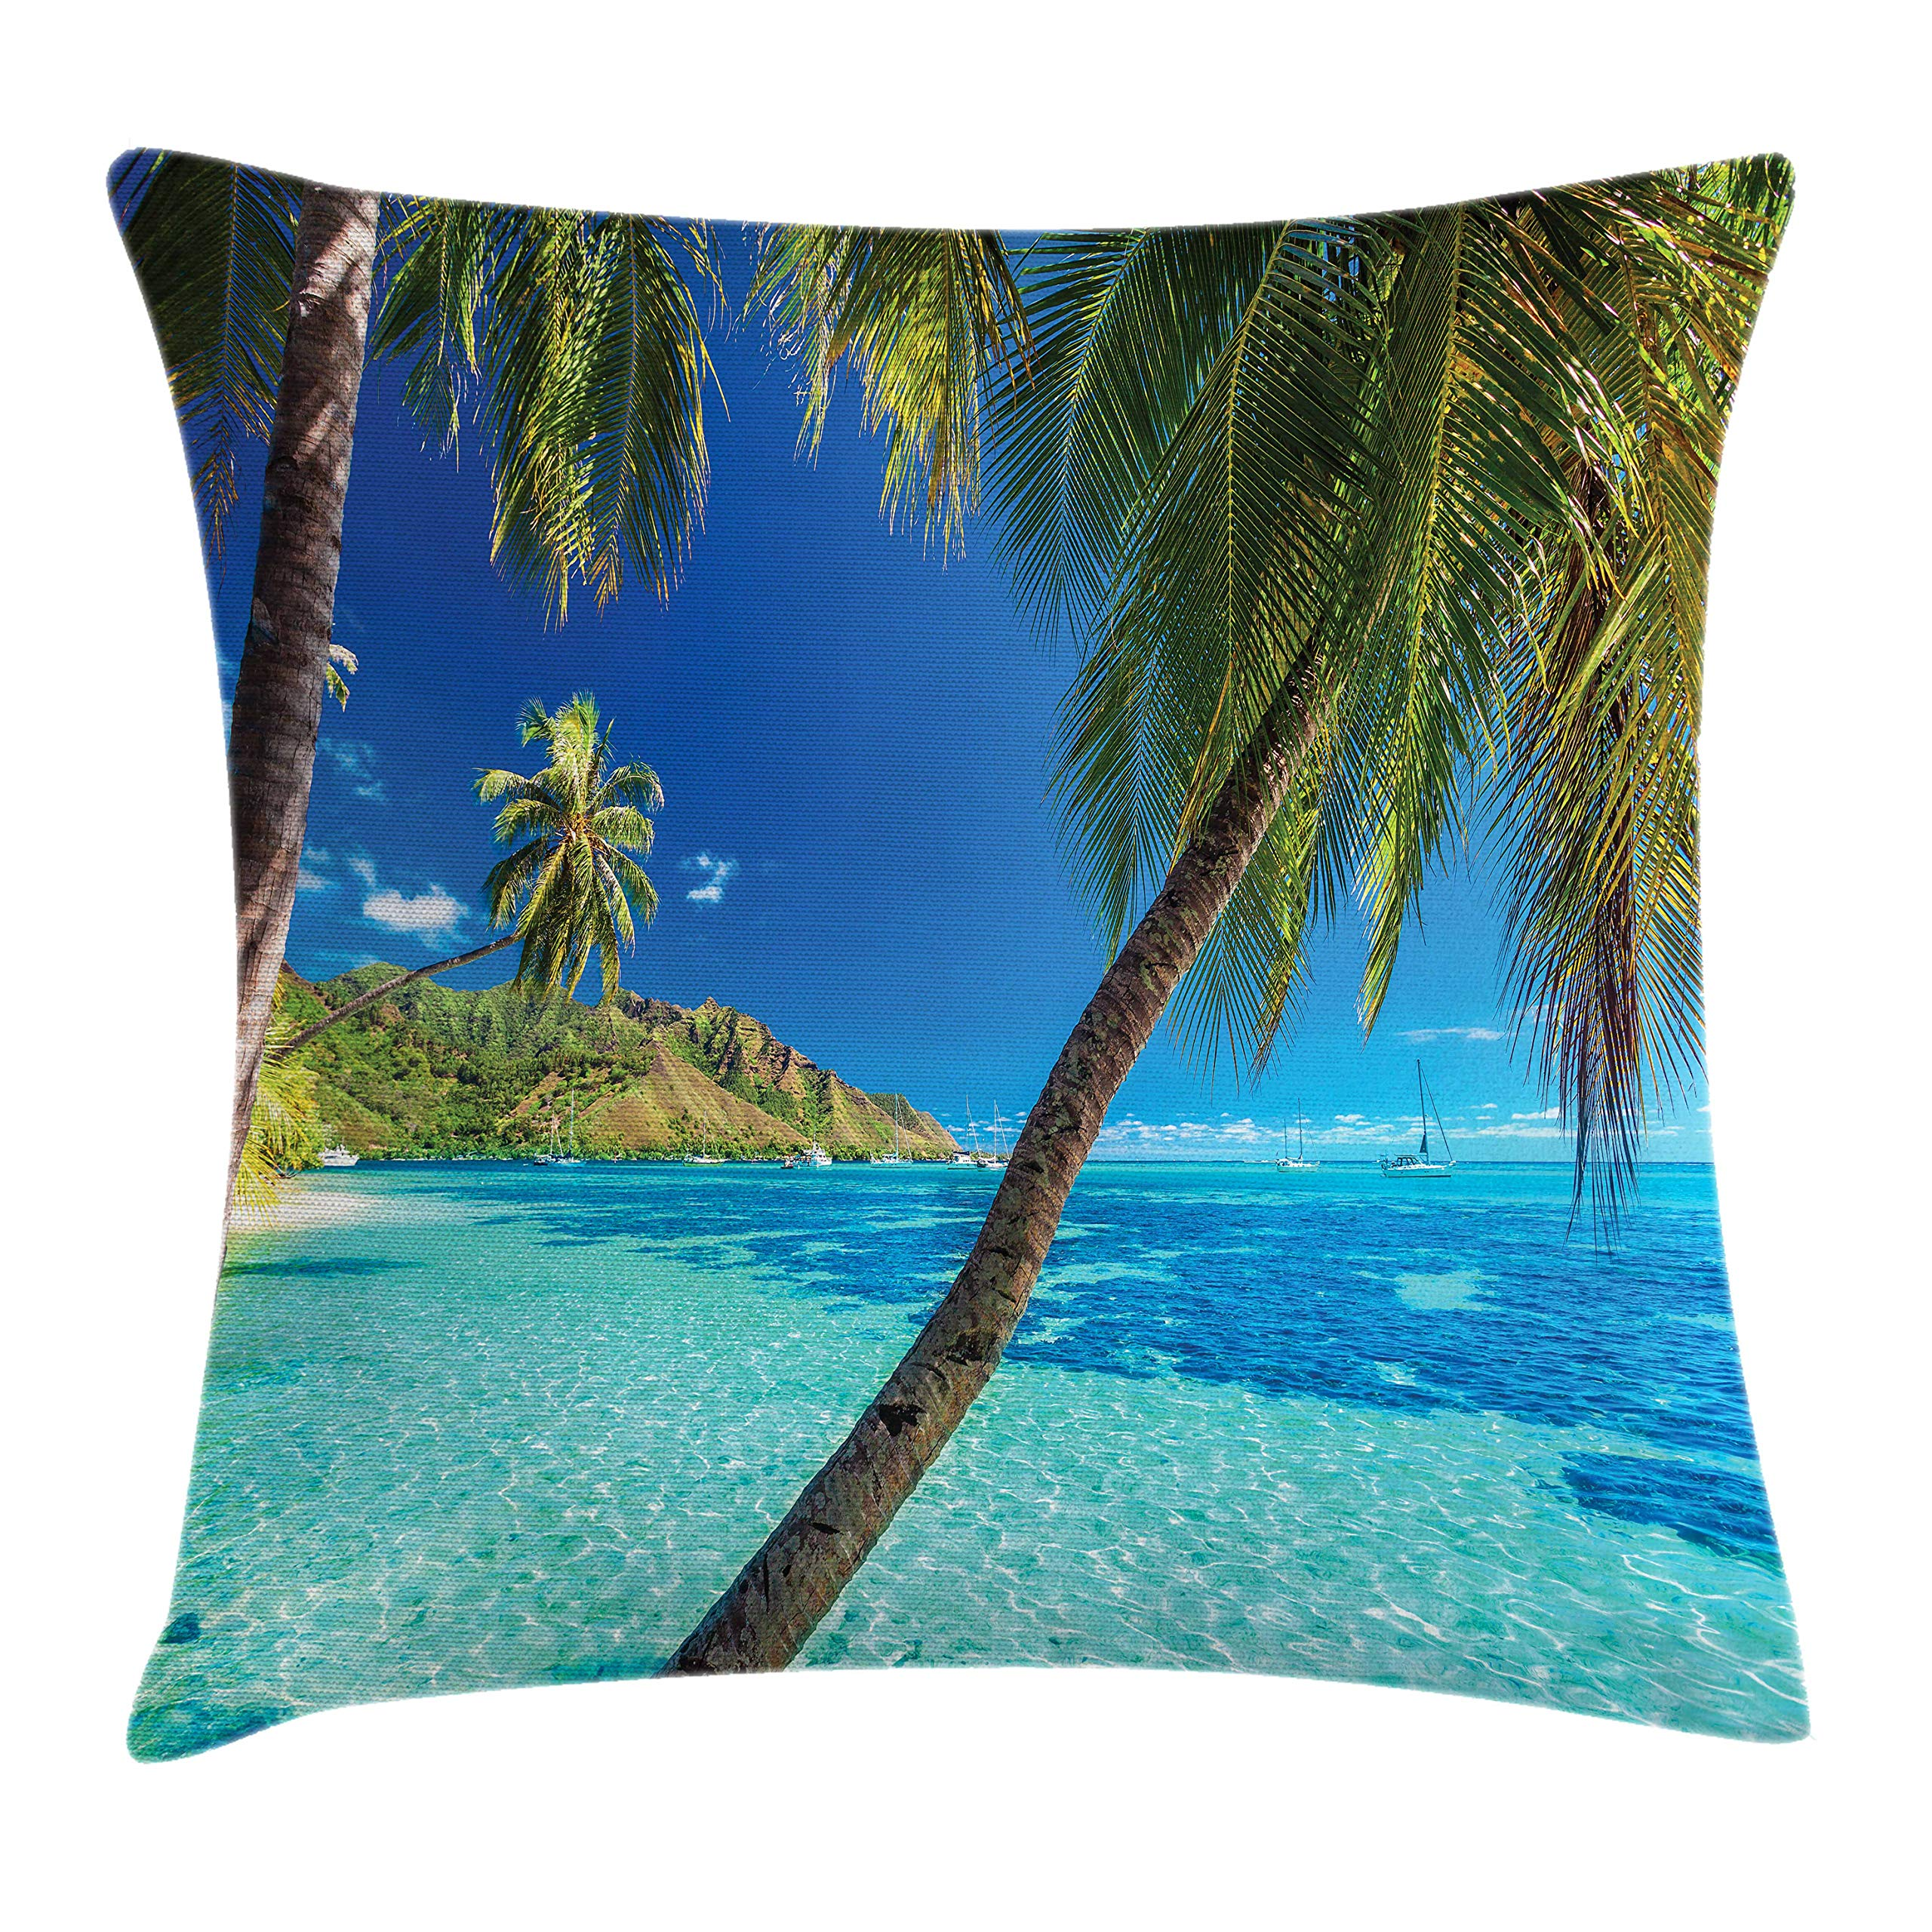 Ambesonne Ocean Throw Pillow Cushion Cover, Image of a Tropical Island with The Palm Trees and Clear Sea Beach Theme Print, Decorative Square Accent Pillow Case, 16 X 16 Inches, Turquoise Blue